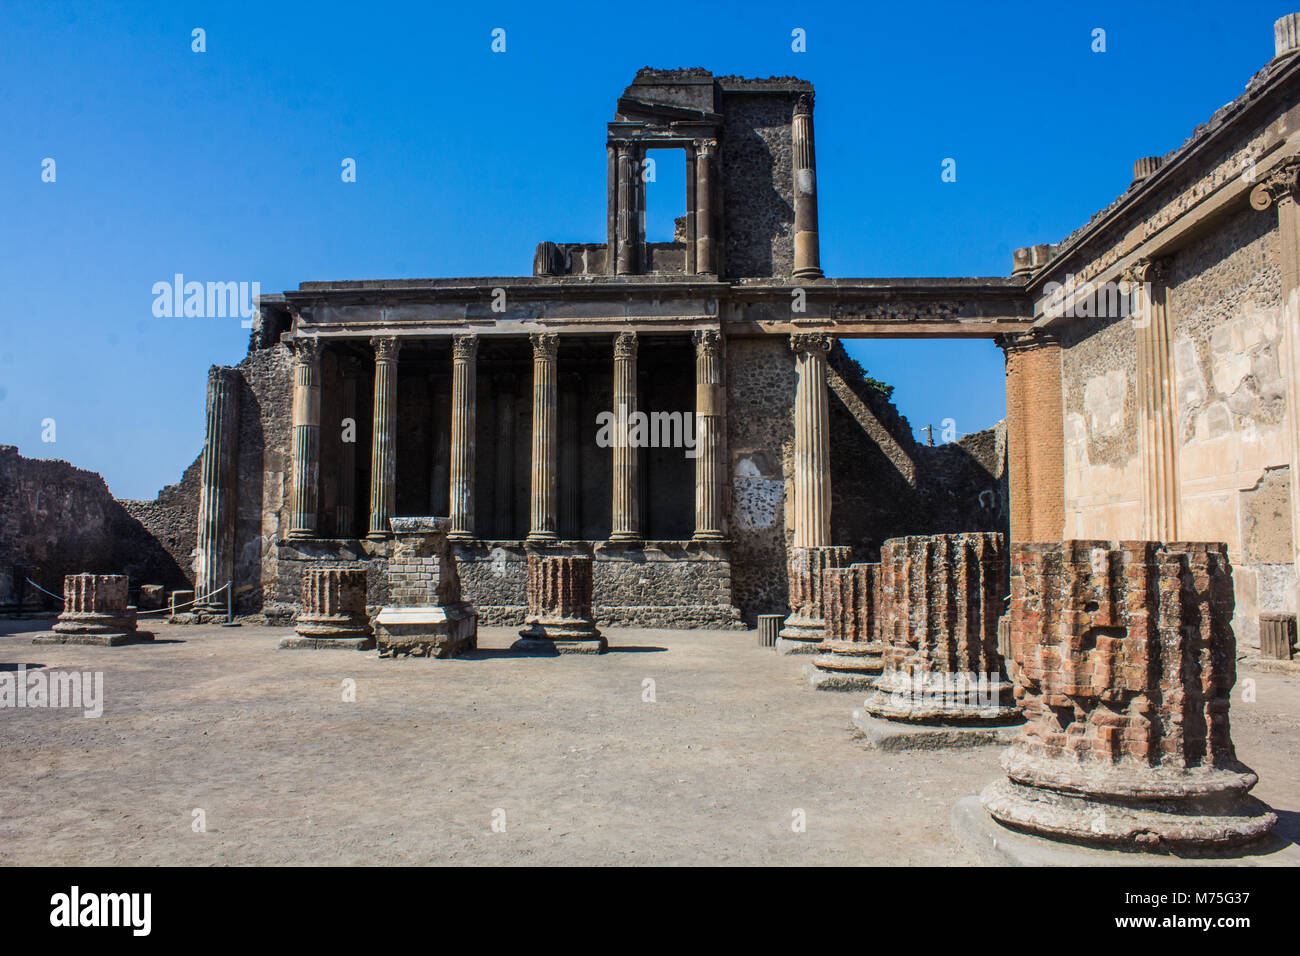 Stabian baths in Pompeii, Italy - Stock Image